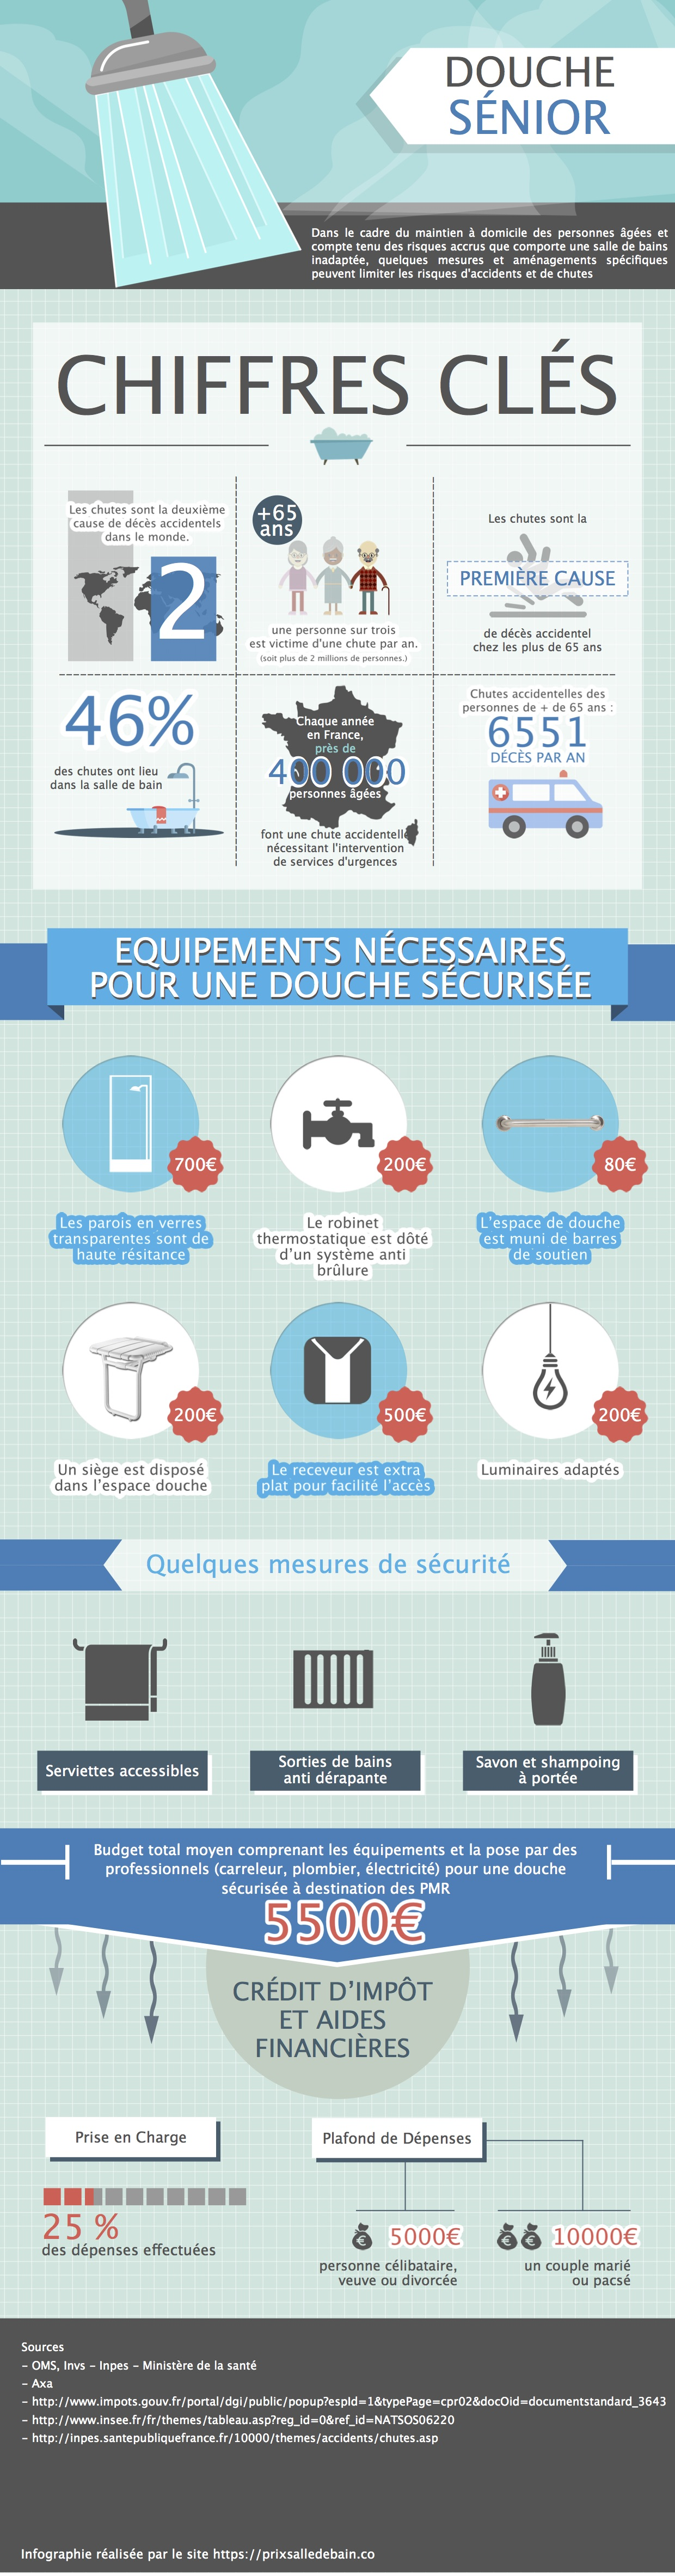 douche-securisee